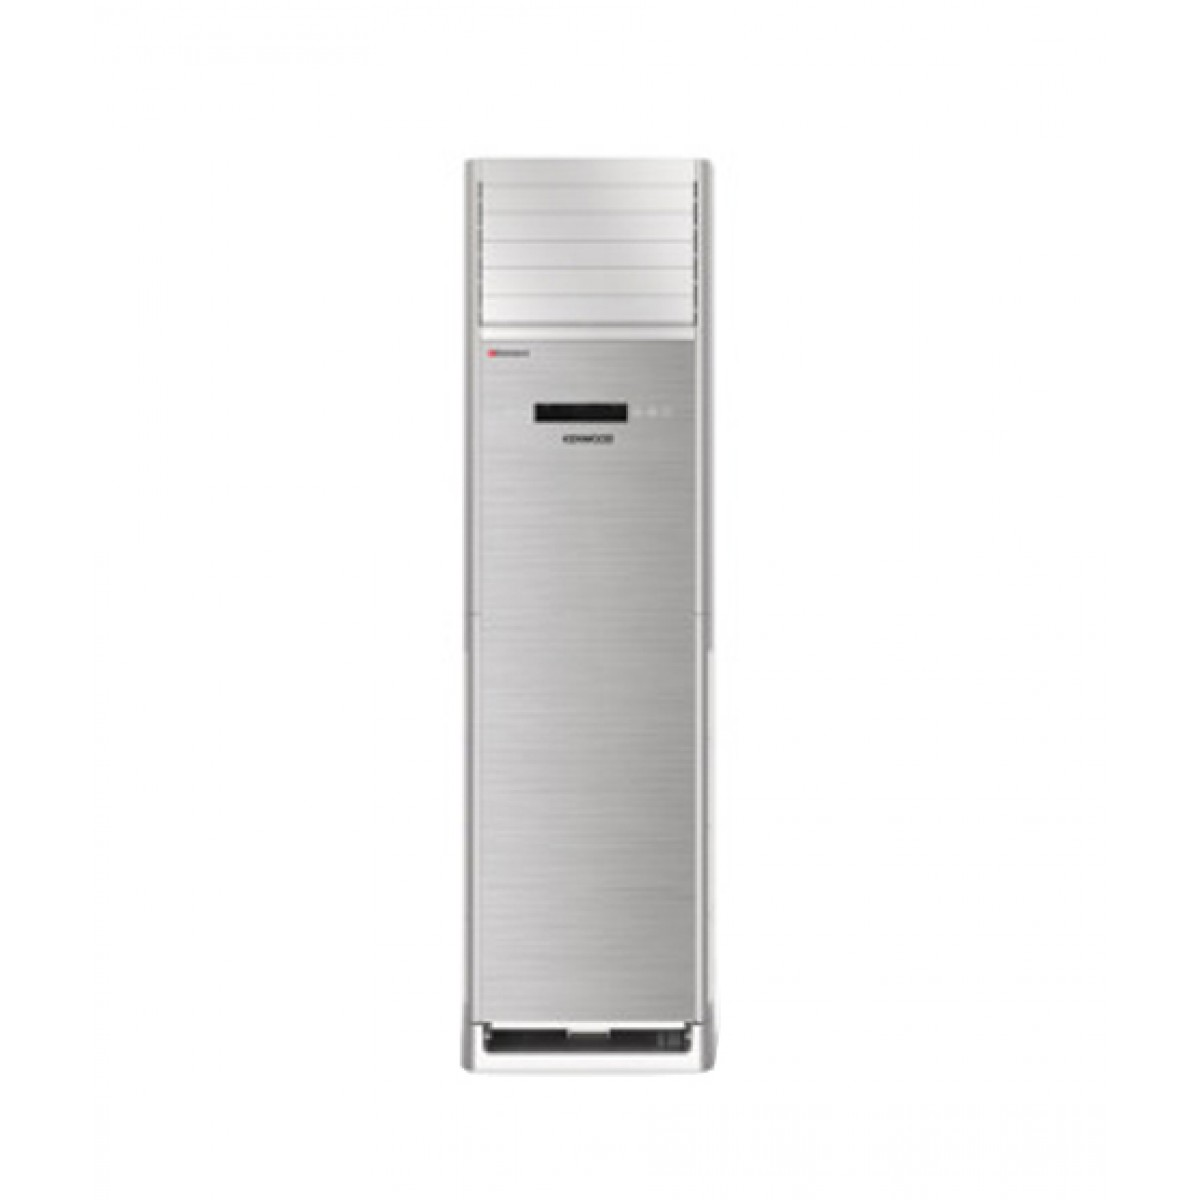 Kenwood Eelement Floor Standing Air Conditioners Price In Pakistan Buy Kenwood Floor Standing Air Conditioners 2 0 Ton Kee 240f Ishopping Pk